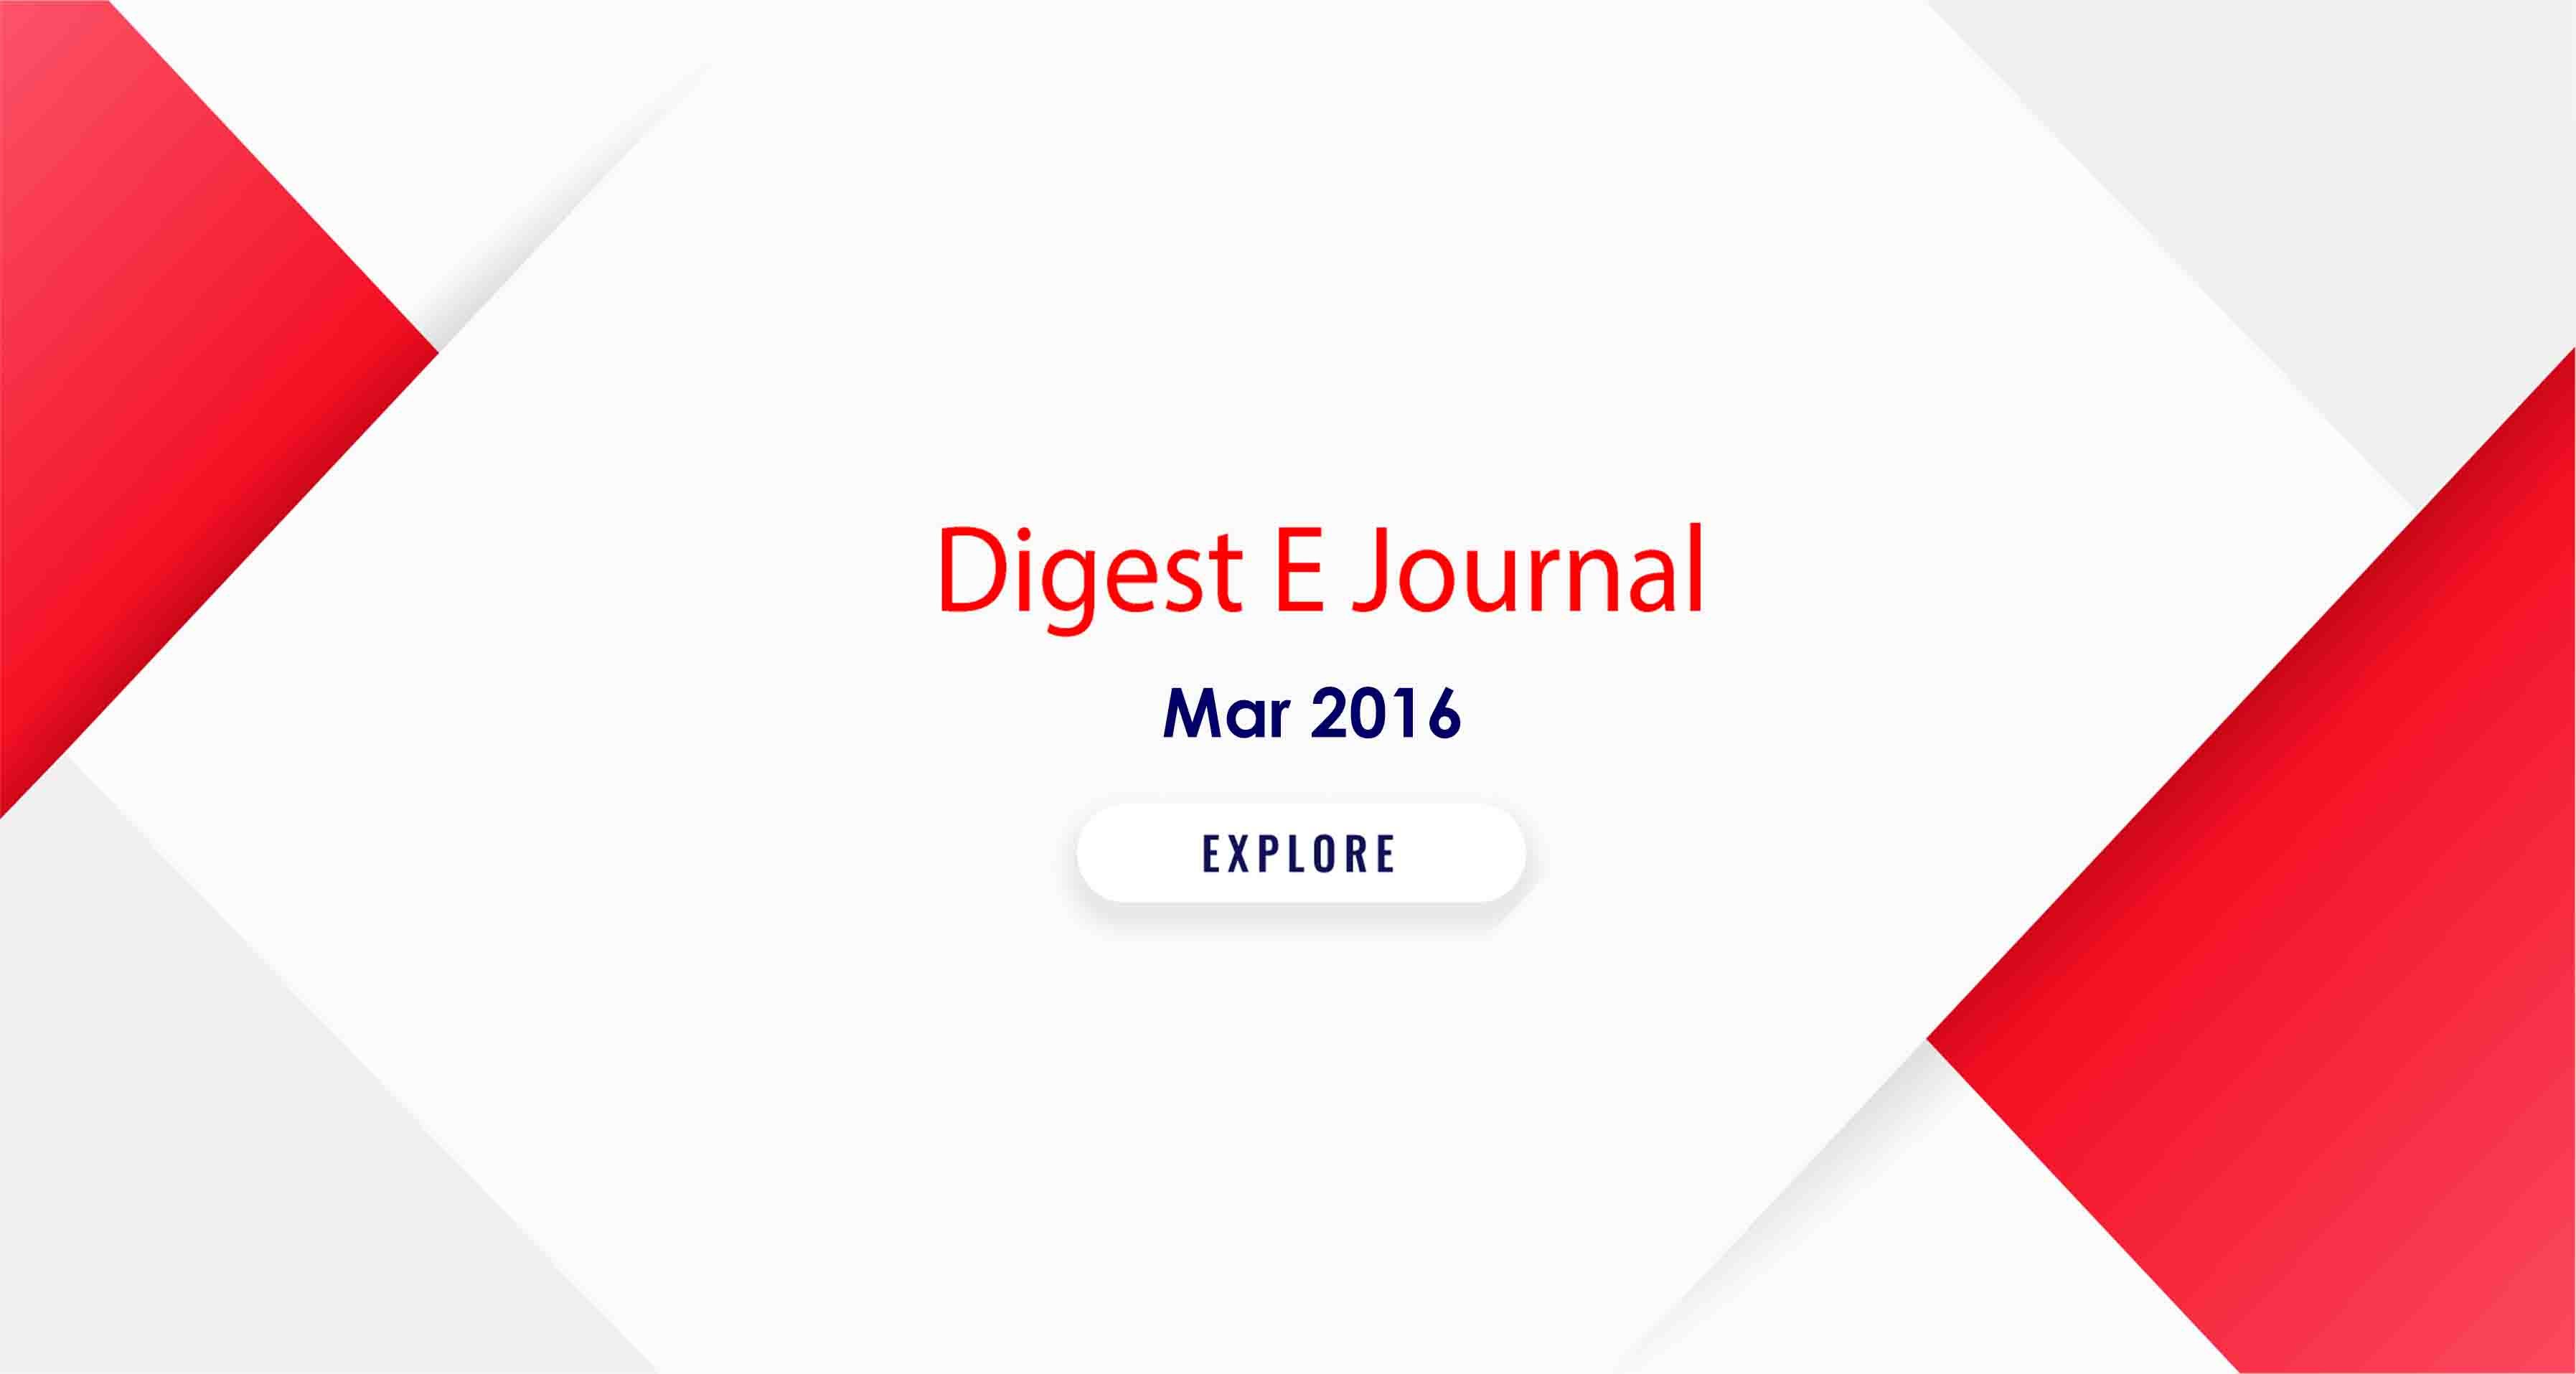 MAR 2016 INTERNS DIGEST